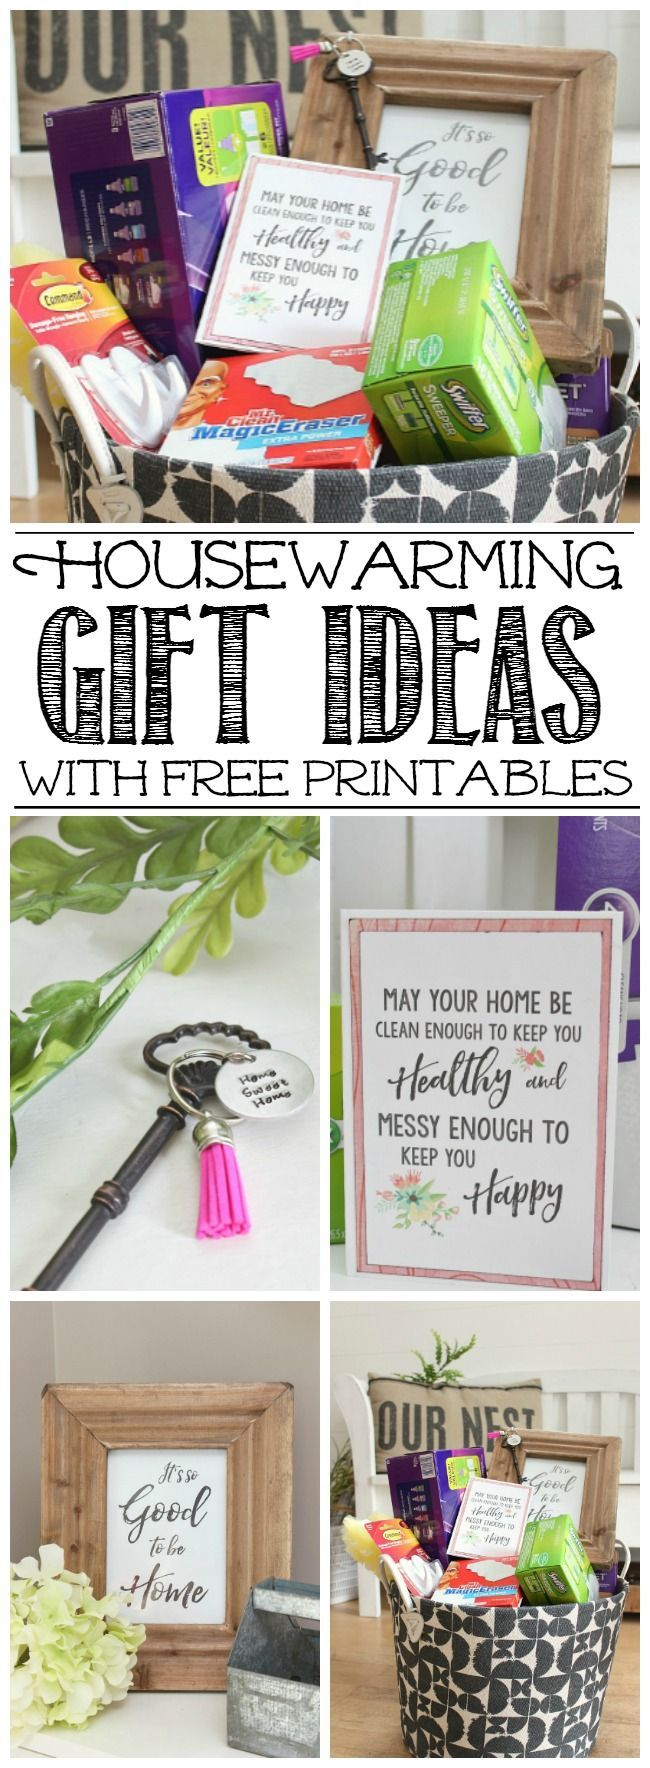 17 Best images about Housewarming Gifts on Pinterest | Personalized ...